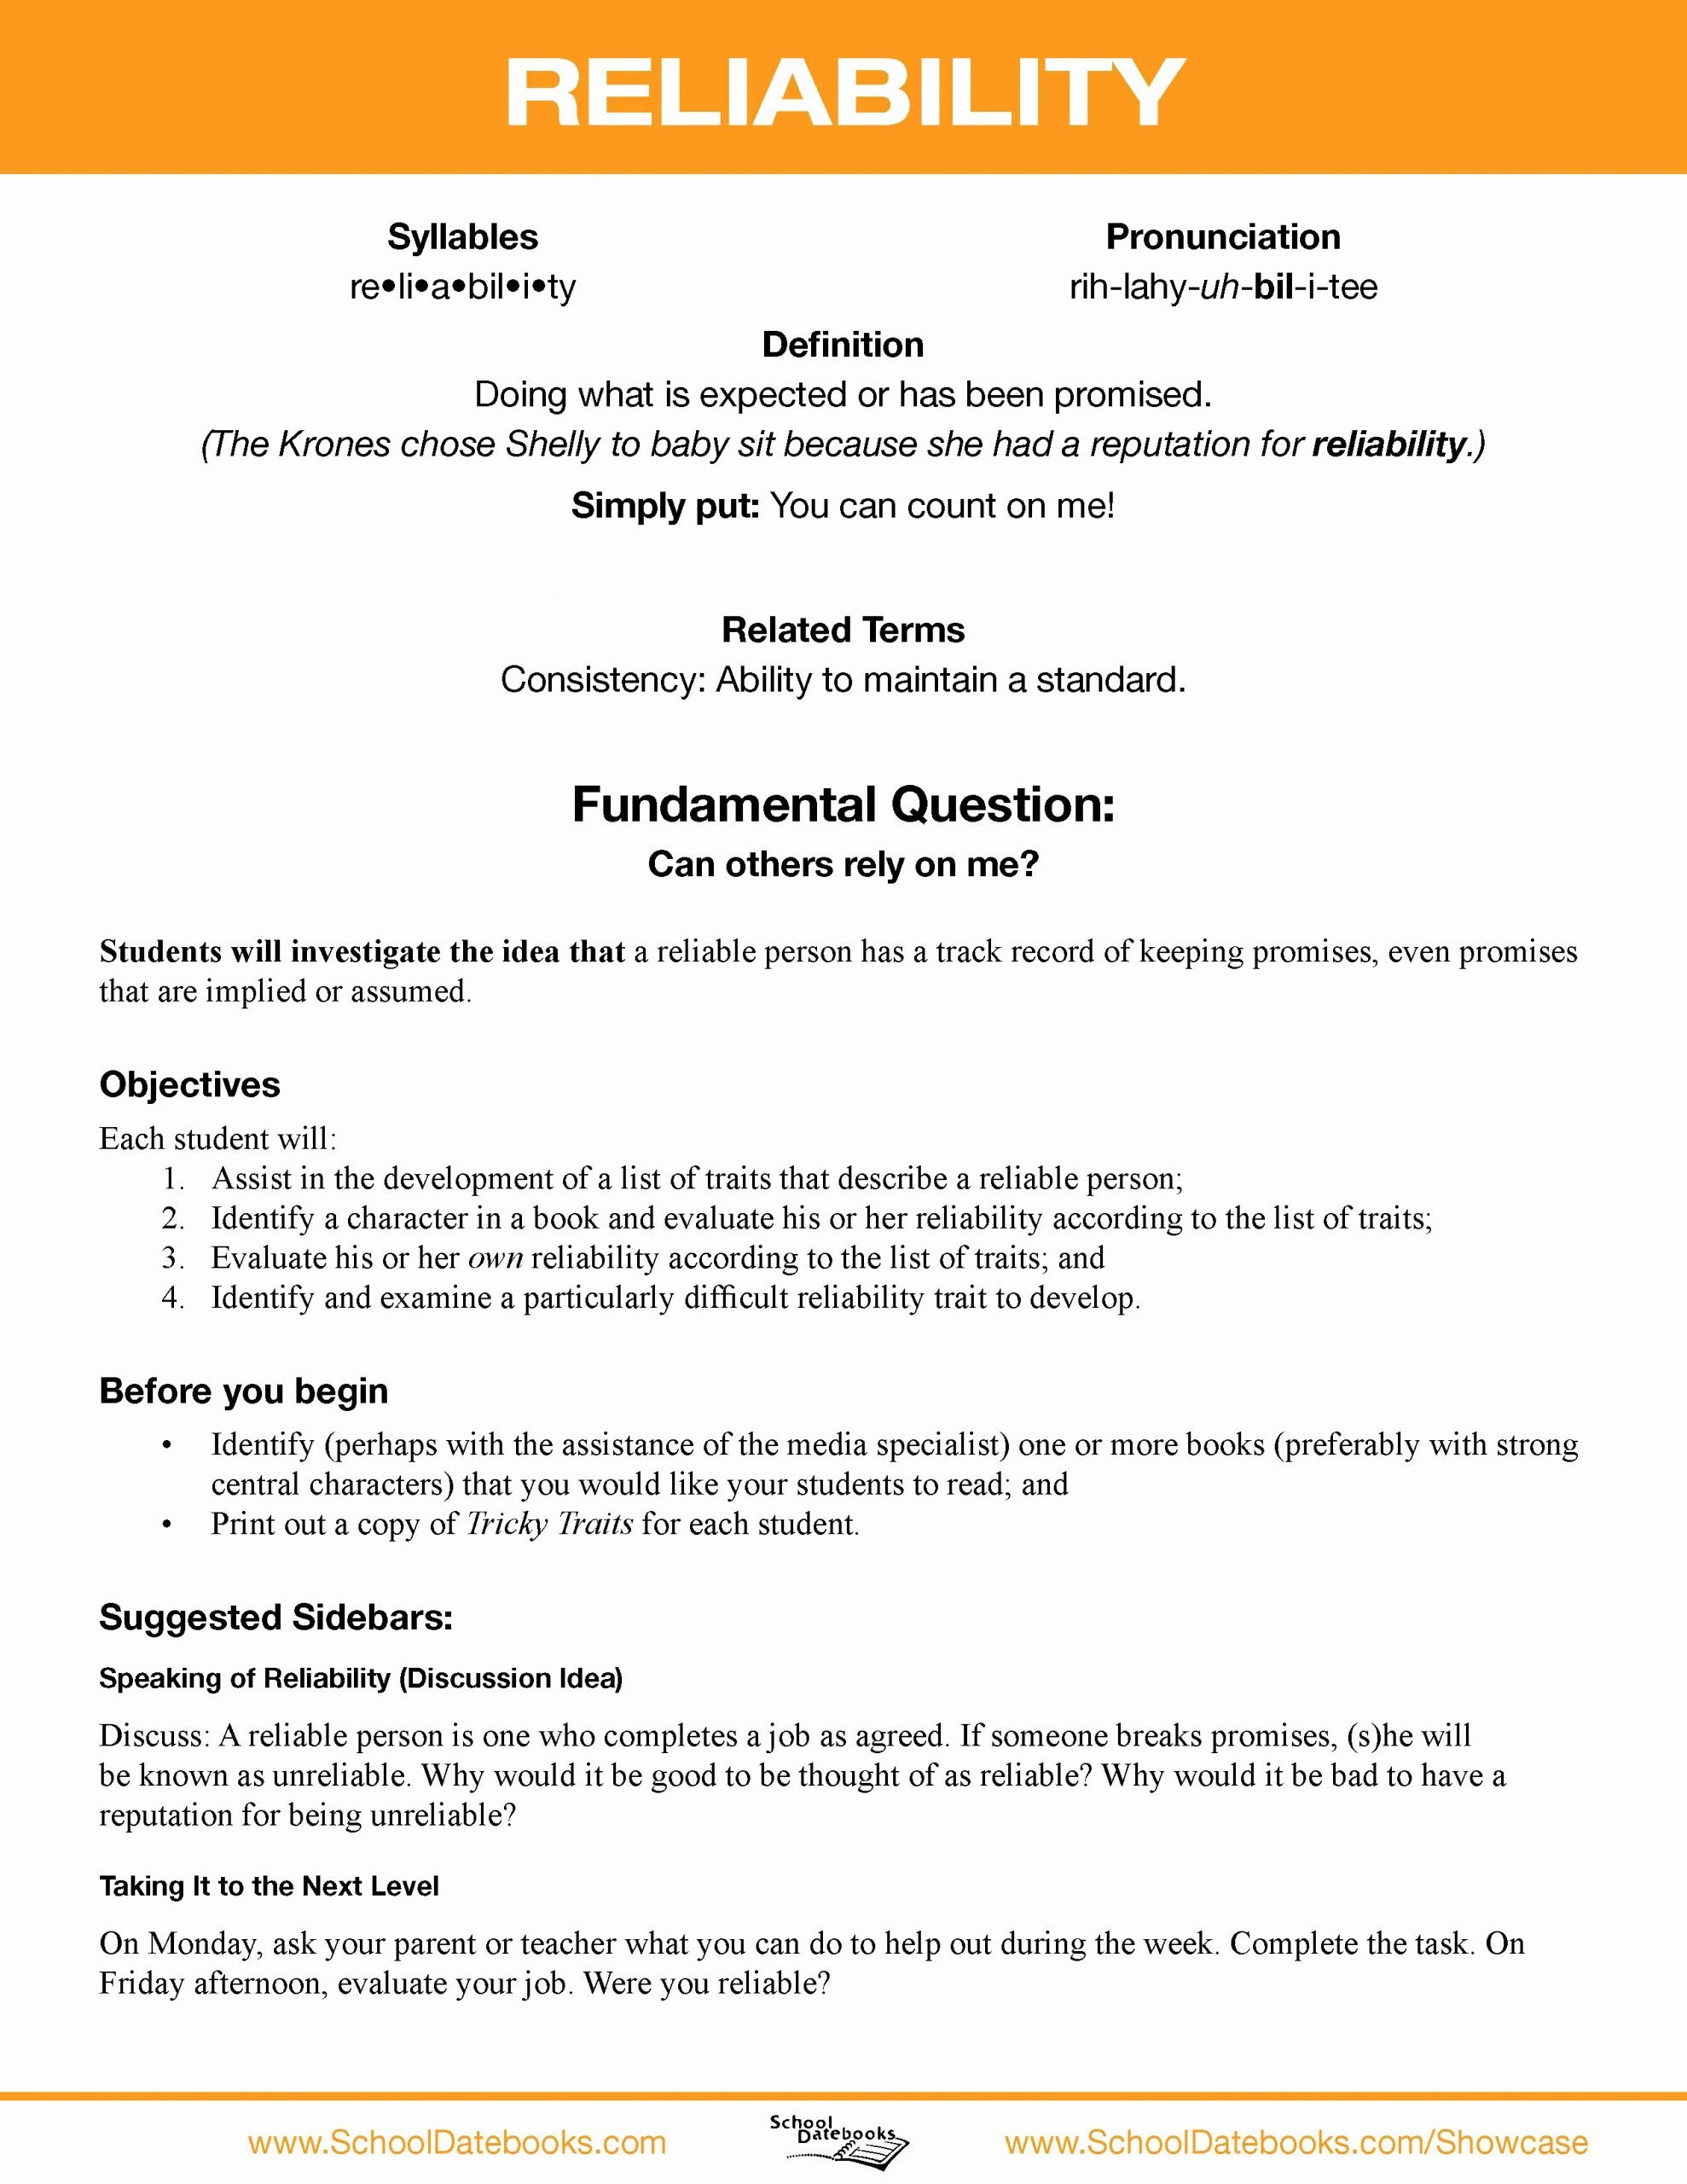 Character Education Worksheets Middle School Printable Reliability Character Lesson Plan Free Able 52